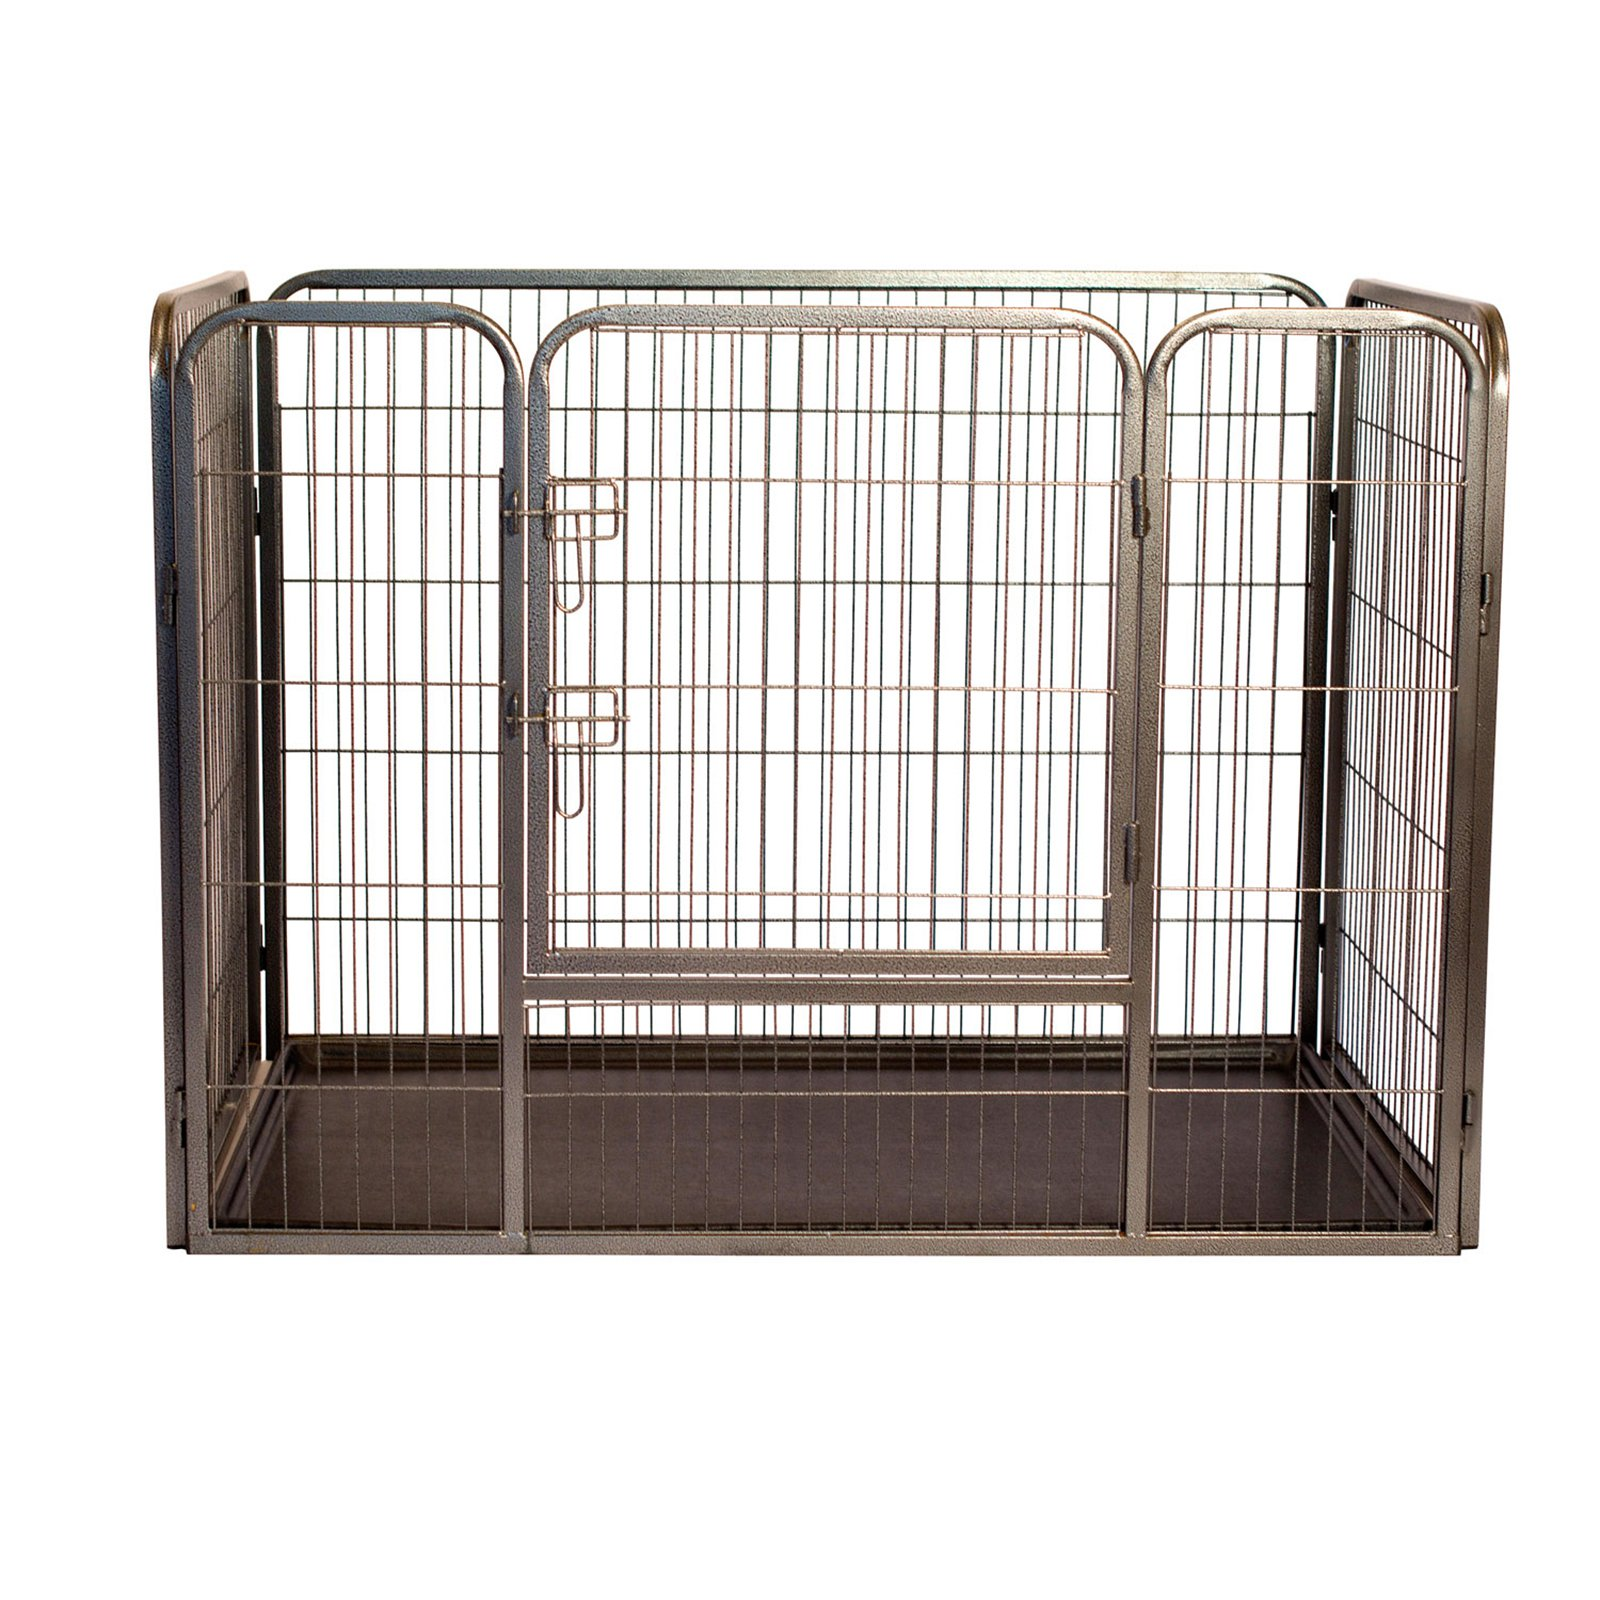 "Iconic Pet Heavy Duty Rectangle Tube Pen Dog Cat Pet Training Kennel Crate, 28"" Height"